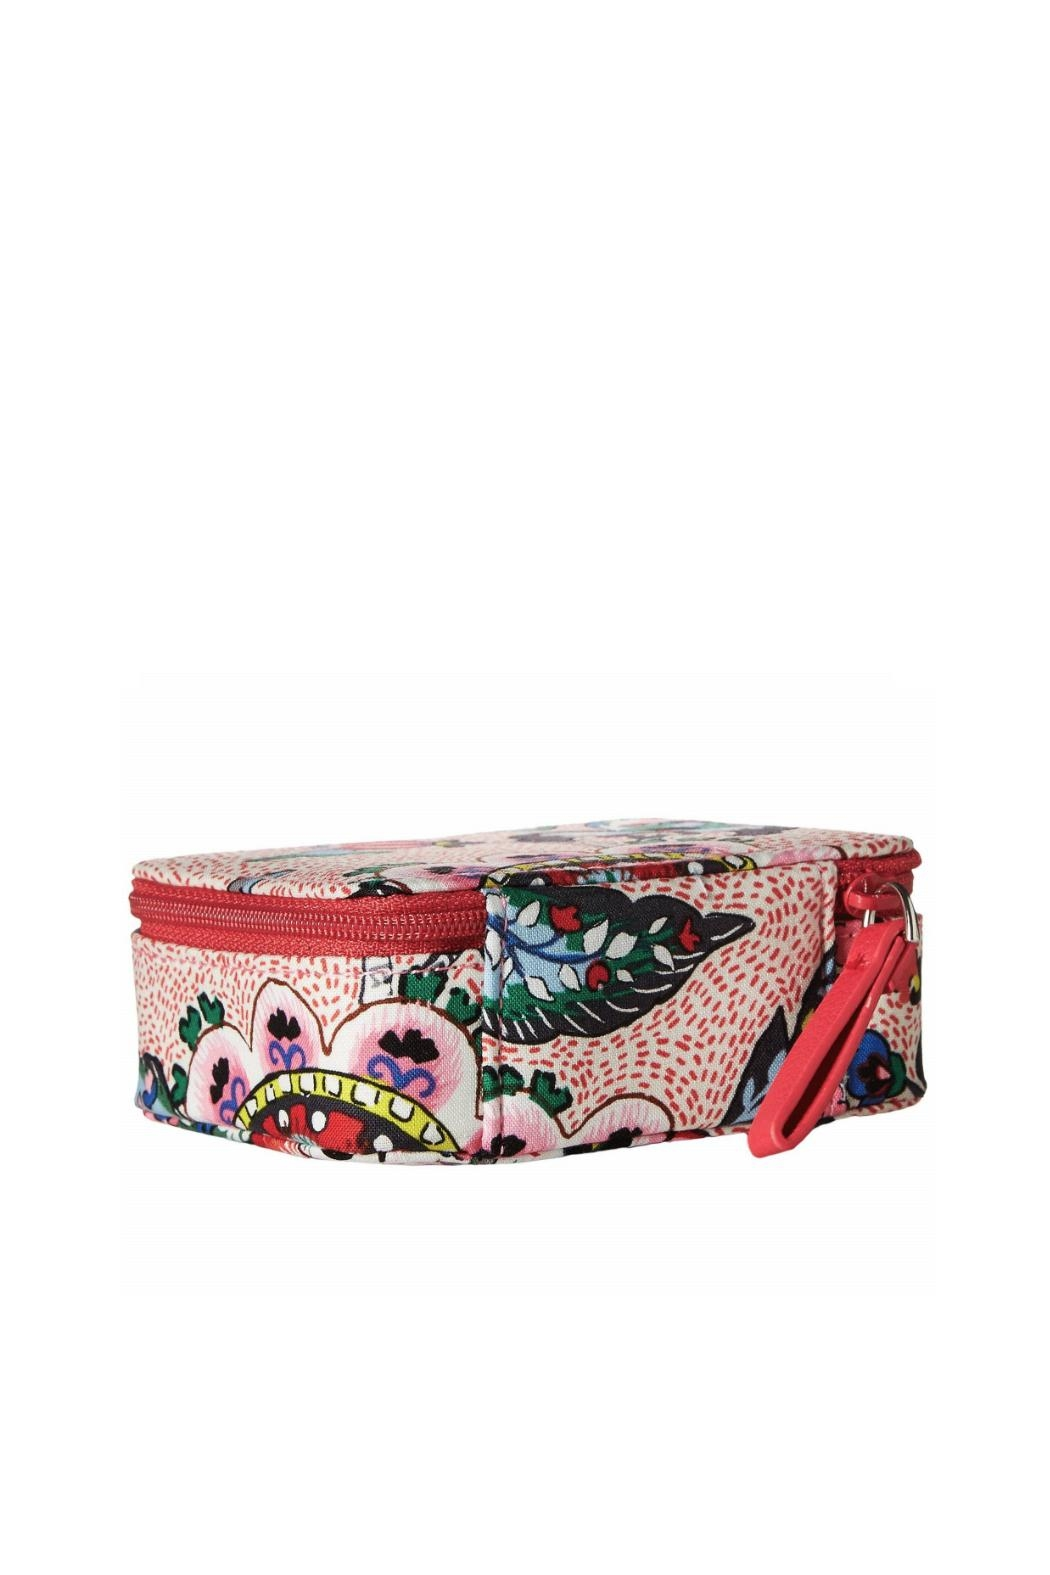 Vera Bradley Stitched Flowers Pill-Case - Front Full Image